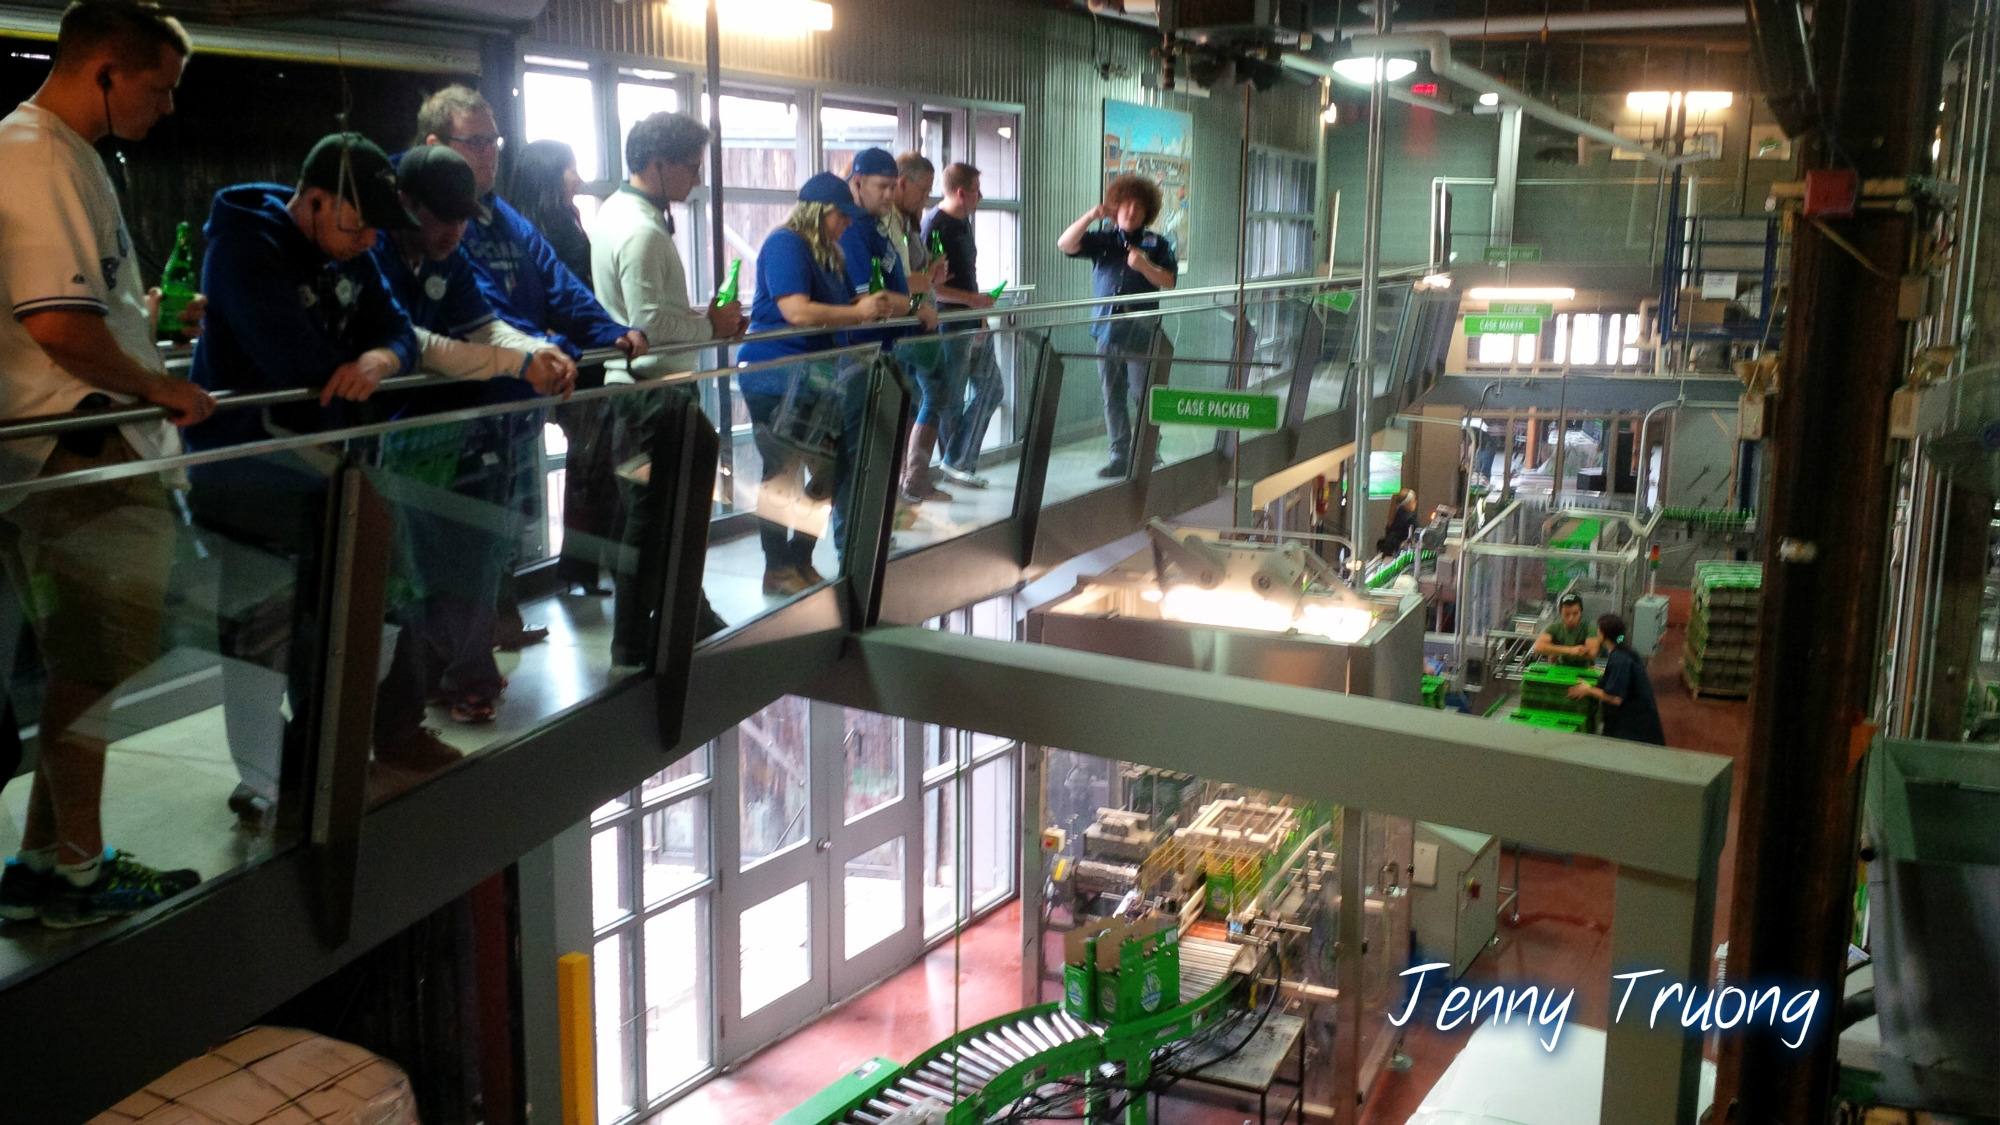 steam whistle brewing tour